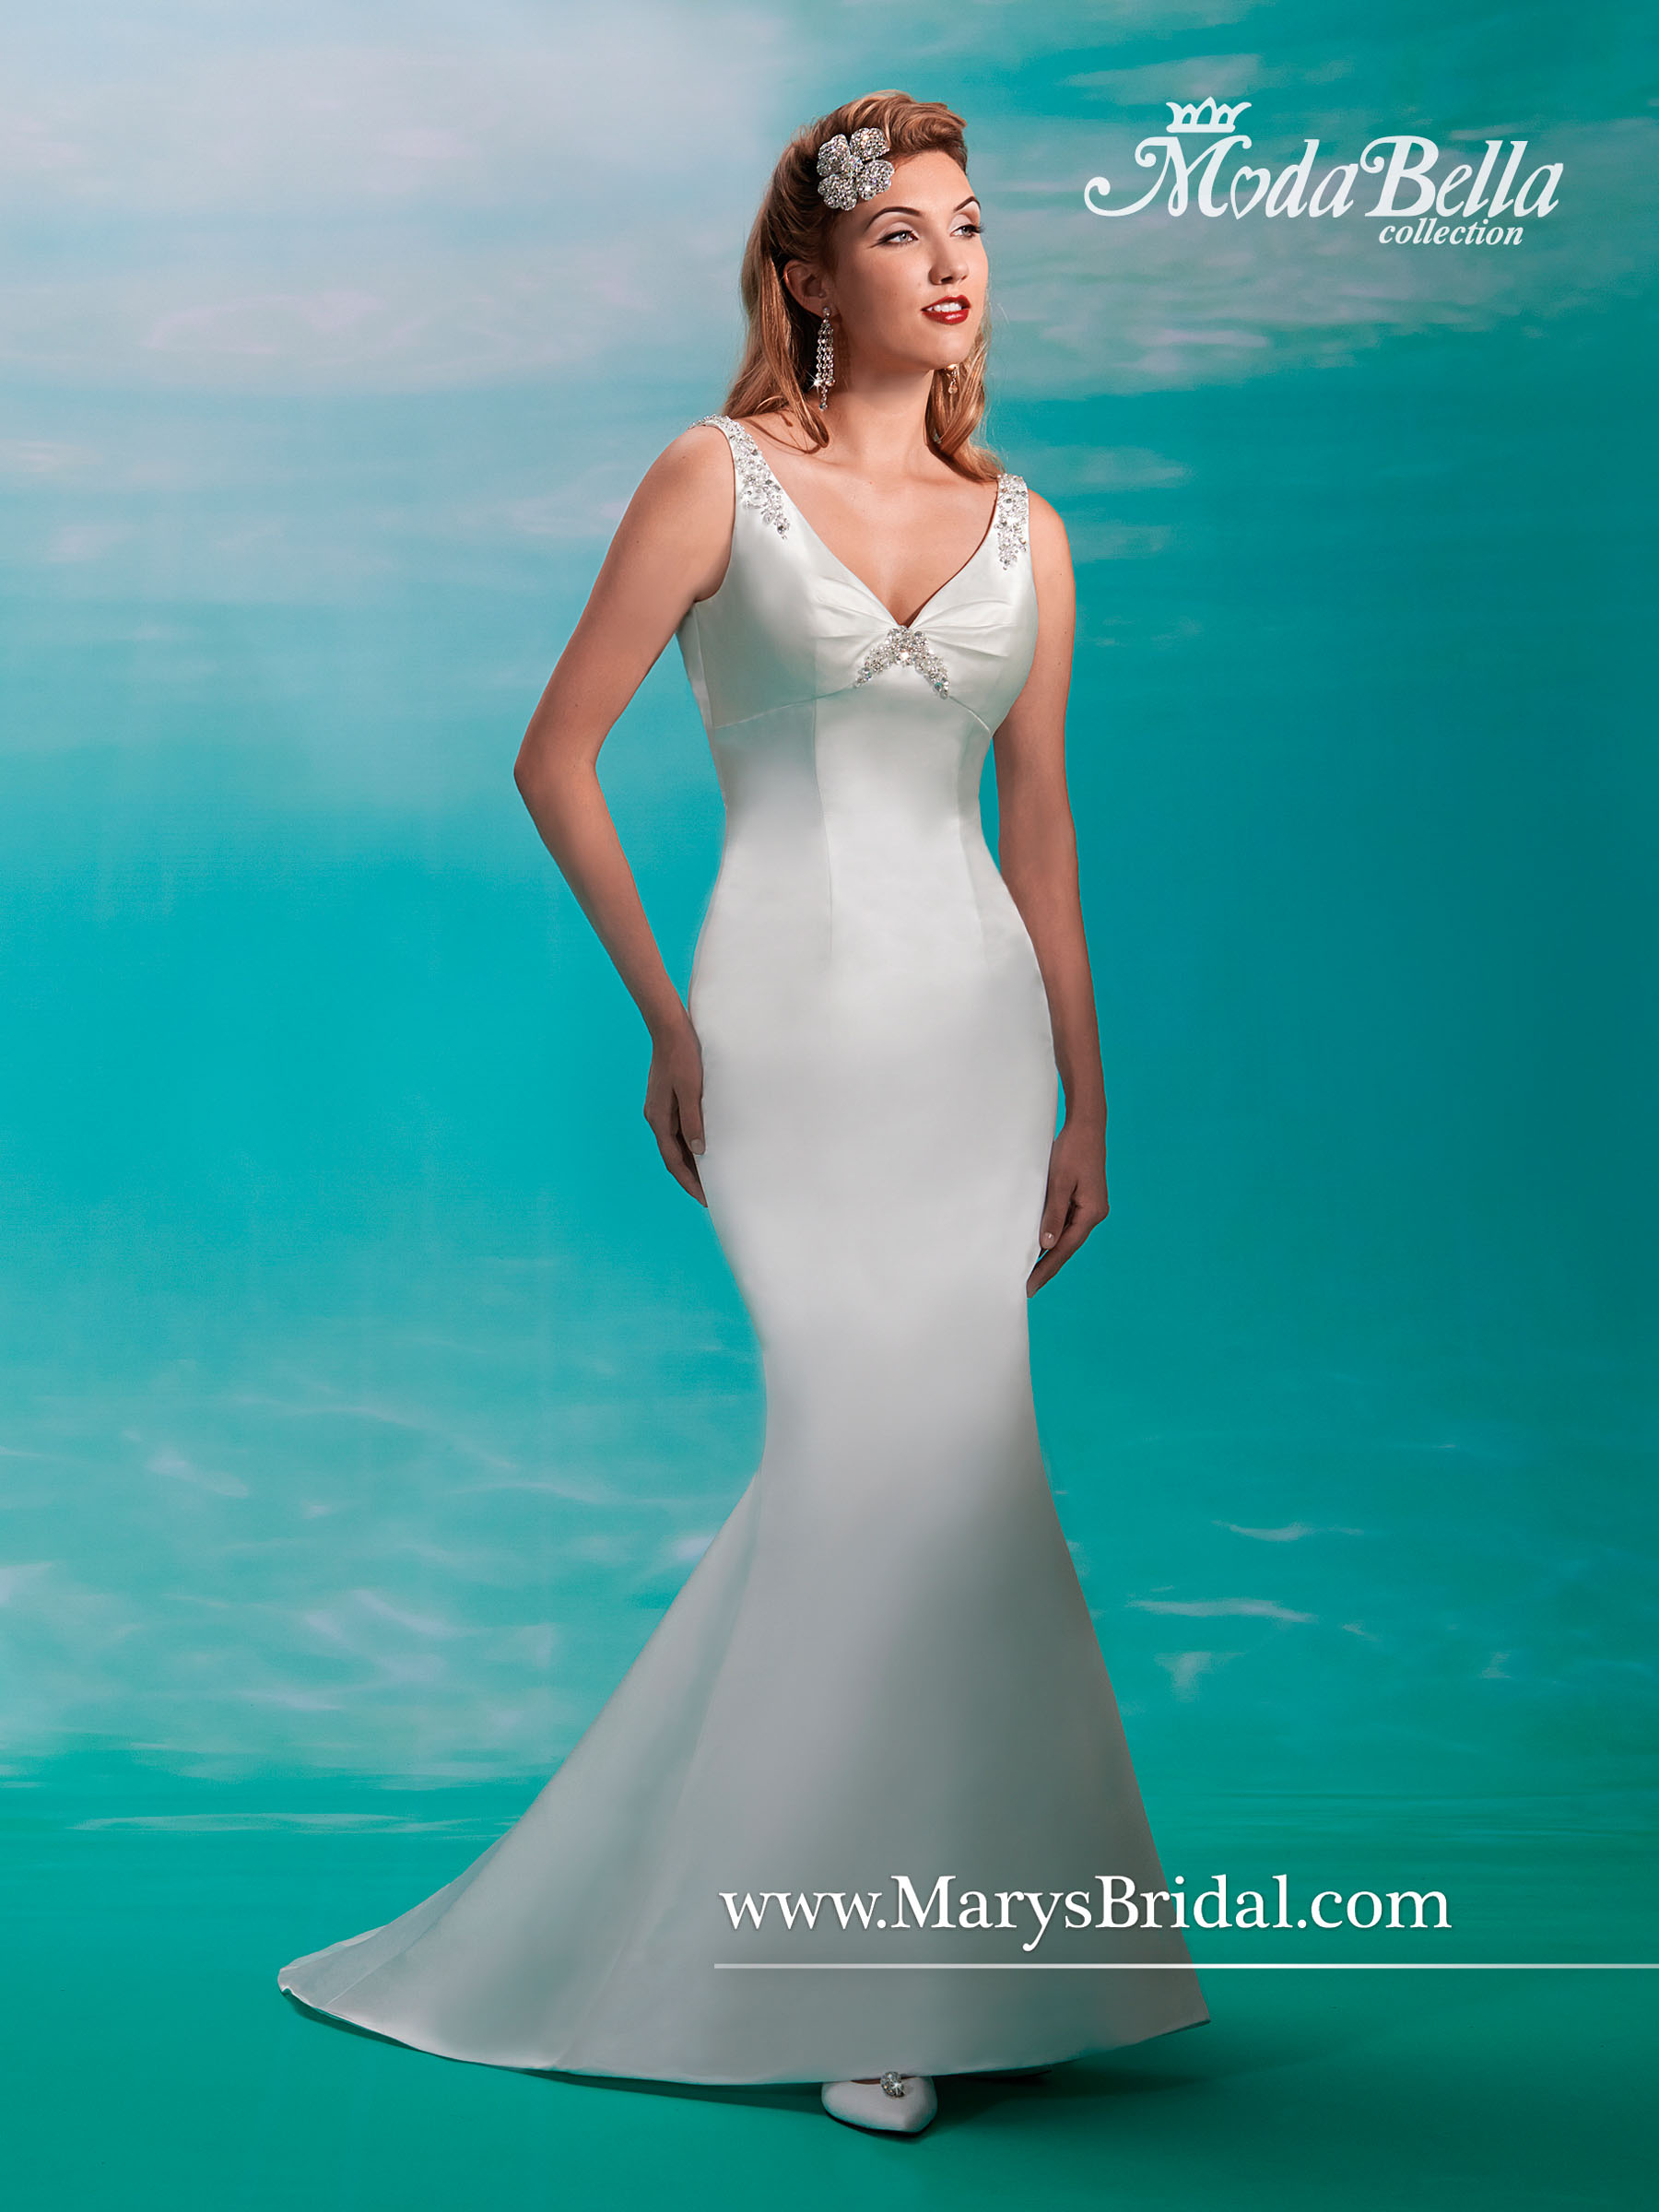 Bridal Dresses | Style - 3Y362 in Ivory/Multi, White/Multi Color